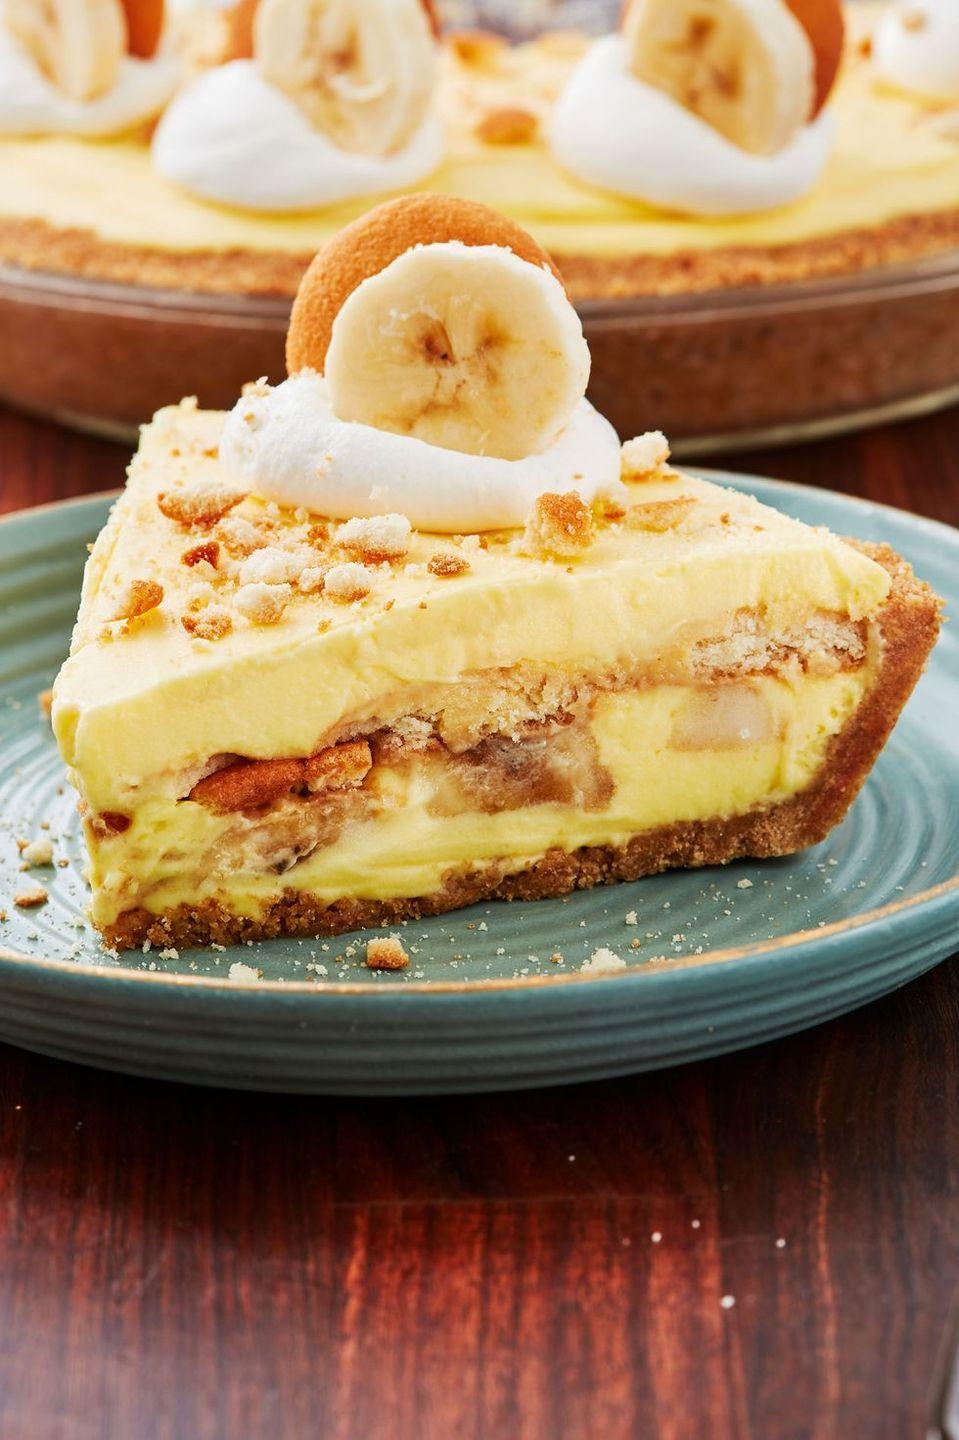 """<p>There's so many ways you can enjoy banana pudding — in a cup, baked into bars, or shaped into a creamy cheesecake. You'll need to refrigerate this uber-decadent mixture overnight to set, but overall prep time will take just about 20 minutes. </p><p><a href=""""https://www.delish.com/cooking/recipe-ideas/recipes/a52780/banana-pudding-cheesecake-recipe/"""" rel=""""nofollow noopener"""" target=""""_blank"""" data-ylk=""""slk:Get the recipe from Delish »"""" class=""""link rapid-noclick-resp""""><em>Get the recipe from Delish »</em></a></p>"""